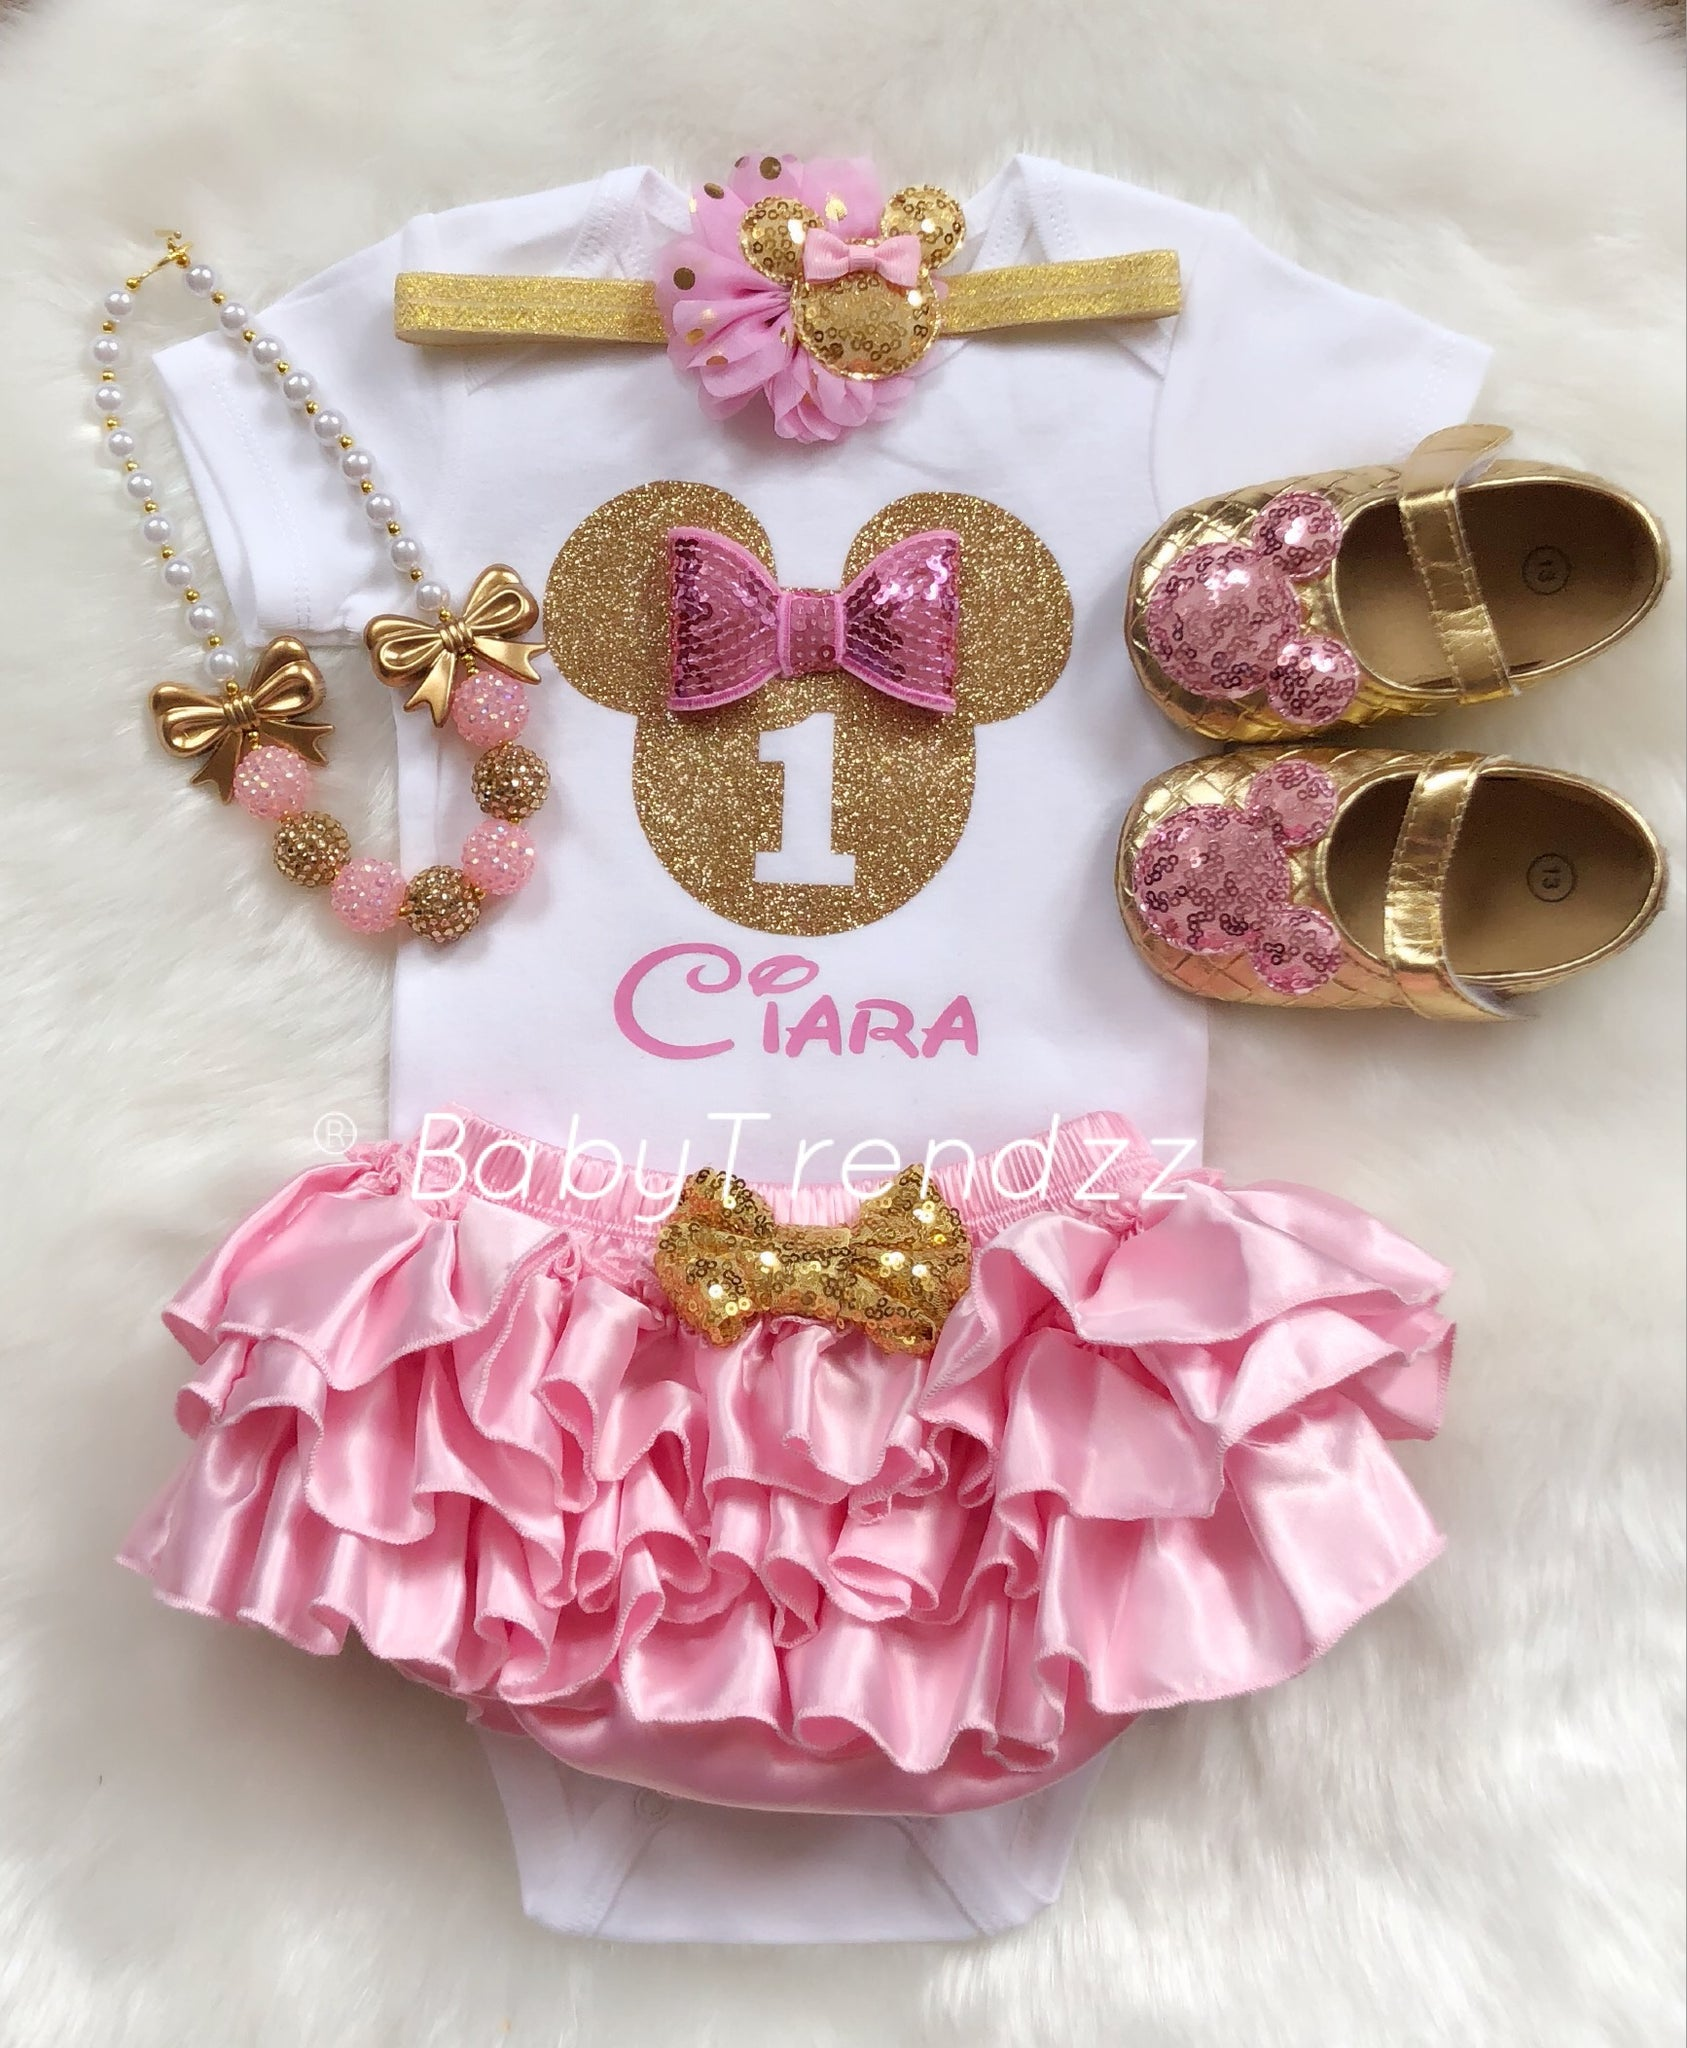 e6618cc21249 BabyGirl Shoes- Minnie Shoes First Birthday Shoes Pink Gold Shoes ...